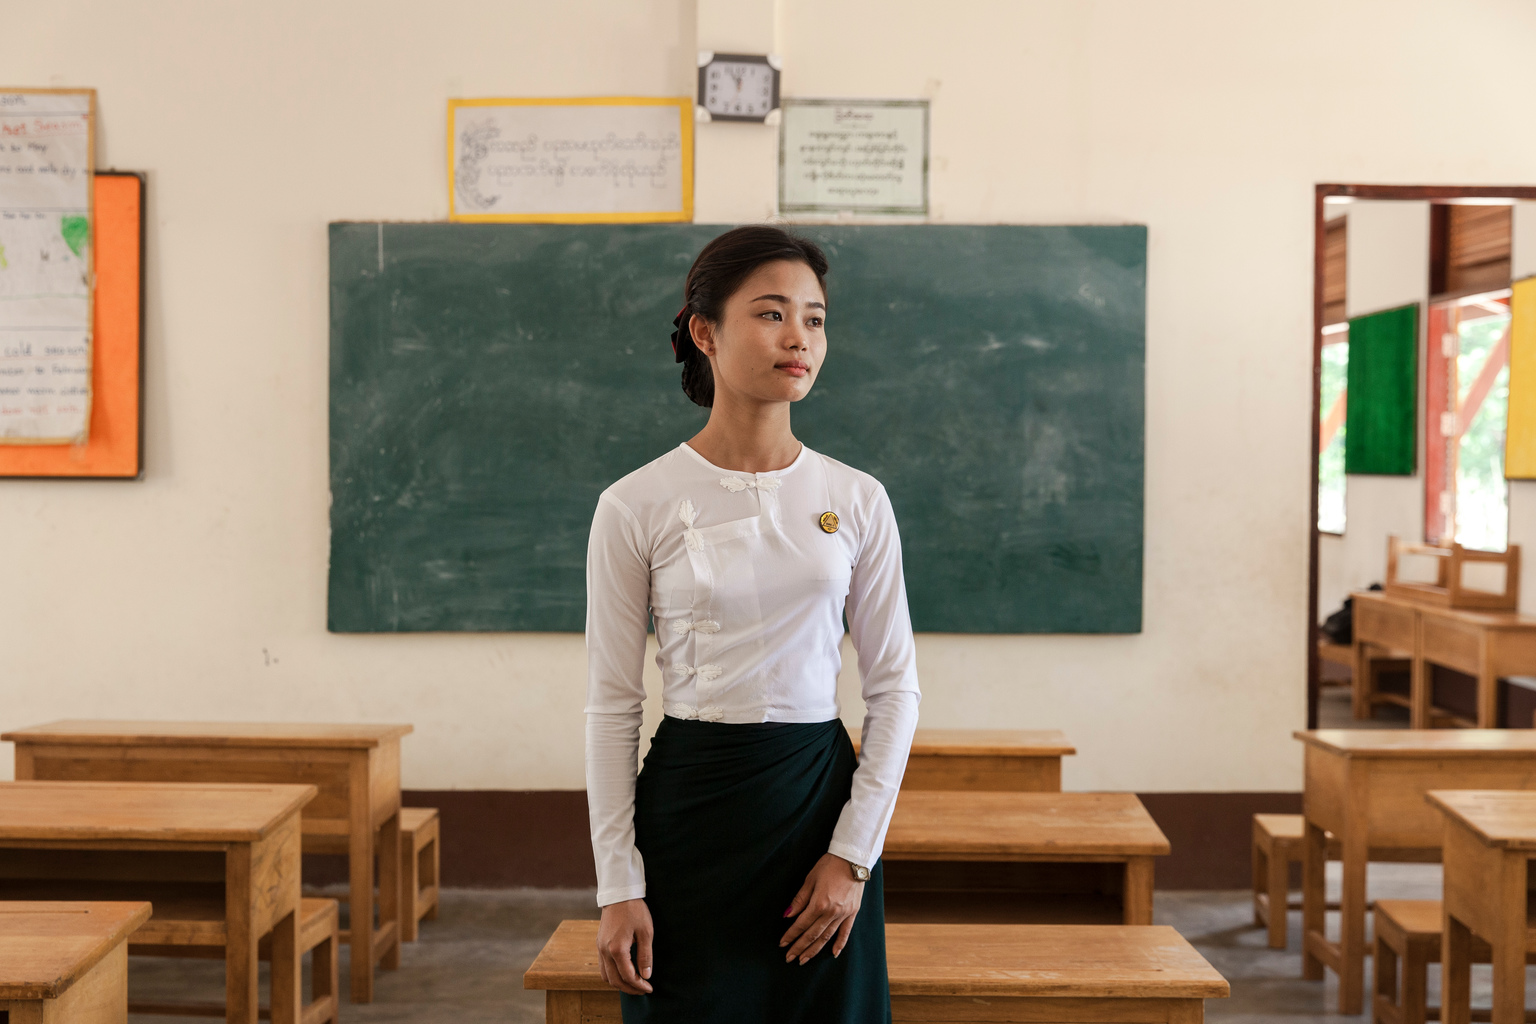 """Nan Maw Maw Kyi, a teacher at the local school who was one of the first at the scene when Min Thiya, 10, and his friend Saw Ba Sun, 9, and two others were injured when they were playing with metallic object that exploded and killed their friend So Aung Myo Win, at the Ann Ka Law village in Kyin State in Myanmar, Monday 3 April 2017. """"We always tell the children: if you find anything strange or unusual in the forest, never touch it, but go and tell an adult."""" says Nan Maw Maw Kyi, but she adds: """"Unfortunately we can't say for certain that something similar won't happen again."""" In 2017, working with the Government of Myanmar, UNICEF will strive to meet the basic needs of the most vulnerable internally displaced children. Myanmar is experiencing three protracted humanitarian crises, each with its own set of complex underlying factors. In Rakhine State, inter-communal violence that erupted in 2012 continues to plague 120,000 internally displaced people spread across 40 camps or informal sites, as well as host communities. Eighty per cent of the displaced are women and children. In Kachin State, armed conflict that reignited in 2011 continues to impact communities caught in the crossfire between an ethnic armed group and the Myanmar army. Nearly 87,000 people remain displaced as a result, including 40 per cent who are in areas outside of government control. An additional 11,000 people remain displaced in northern Shan State, where a similar conflict broke out in 2011. Compounding the protracted crises are issues related to religious and/or ethnic discrimination, exploitation, chronic poverty, vulnerability to natural disasters, statelessness, trafficking and humanitarian access. In addition to the humanitarian crises in Rakhine, Kachin and Shan states, Myanmar is impacted by humanitarian situations in other parts of the country, including natural disasters, health emergencies and small-scale displacements."""